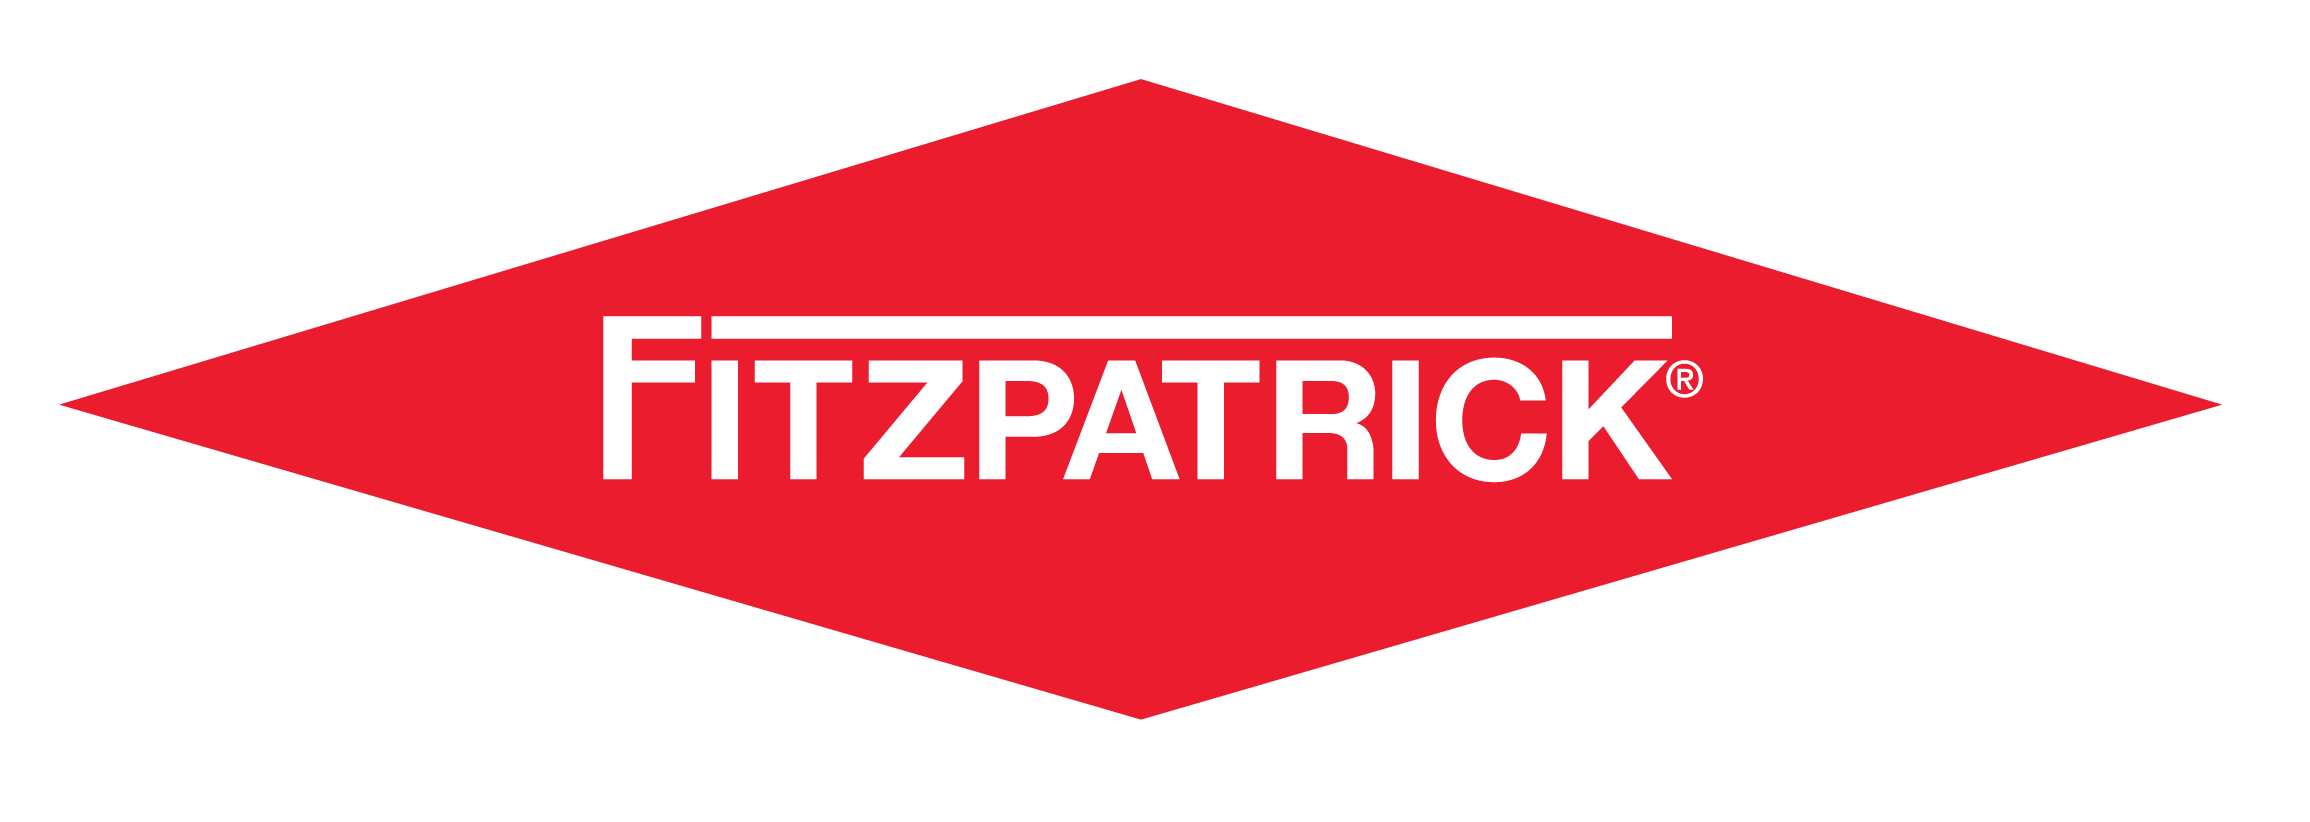 Fitzpatrick_Logo_FINISH_color.png